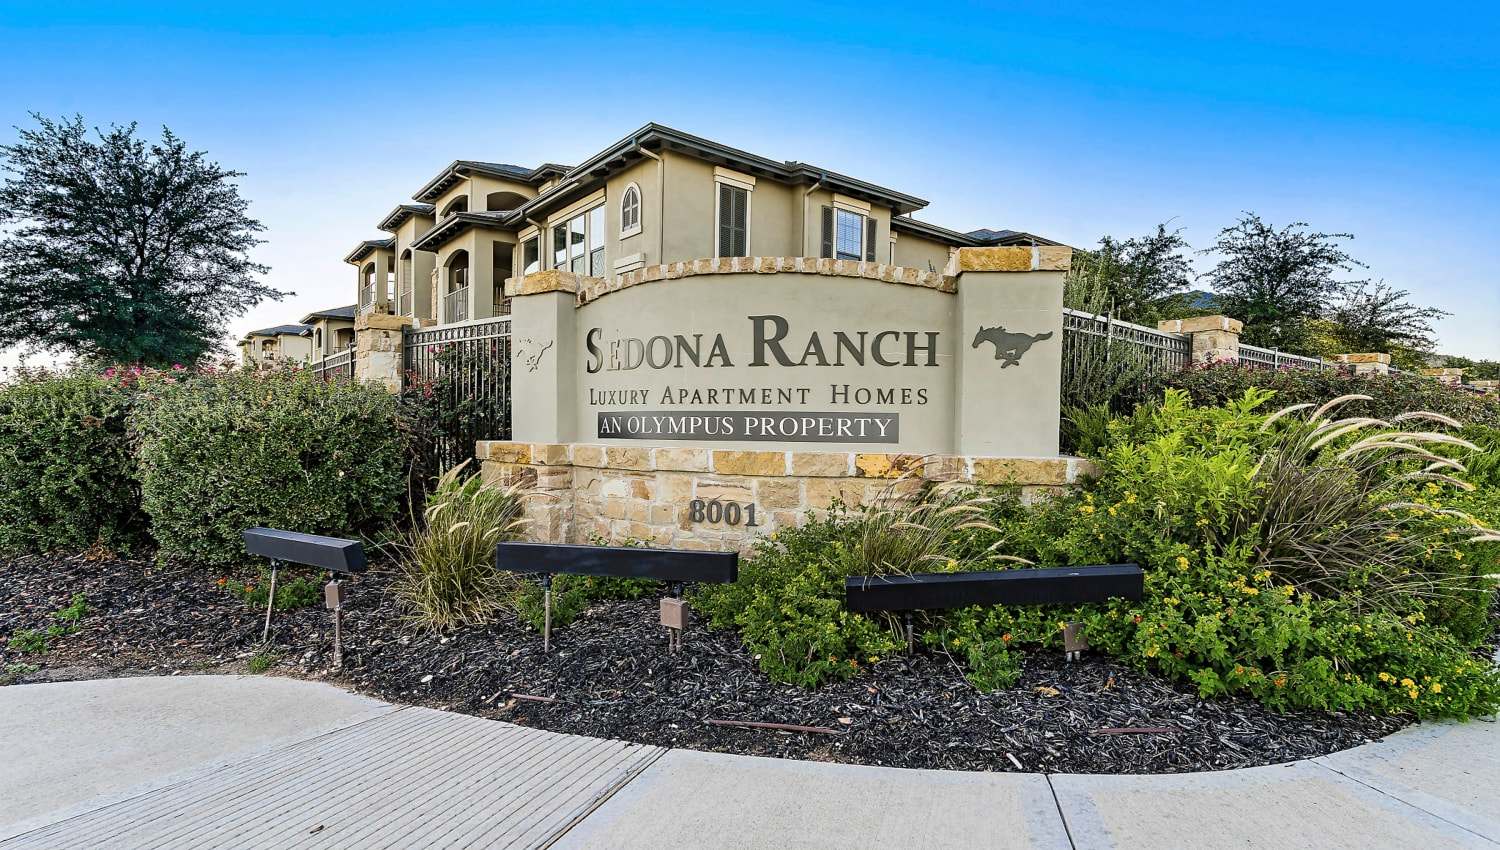 Our monument sign welcoming residents and guests to Sedona Ranch in Odessa, Texas